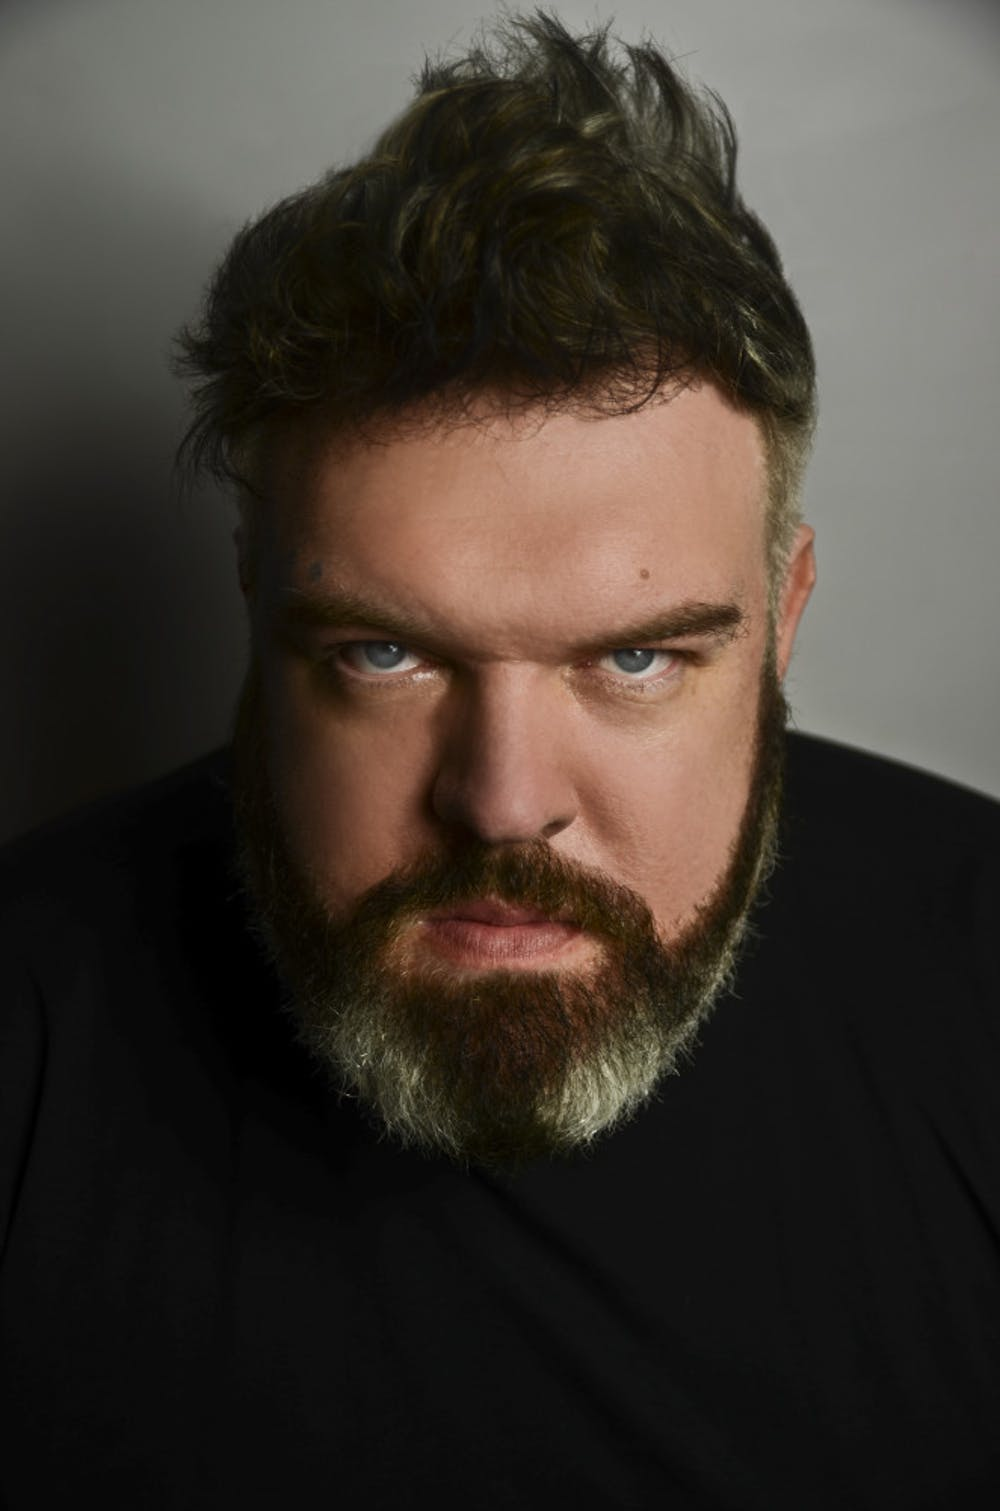 """<p><span id=""""docs-internal-guid-c9ae3354-a04d-1533-d6e5-fbad919377e9""""><span>Kristian Nairn, who plays Hodor on """"Game of Thrones,"""" will perform a live DJ set at Simon's Night Club downtown tonight at 10 p.m.</span></span></p>"""